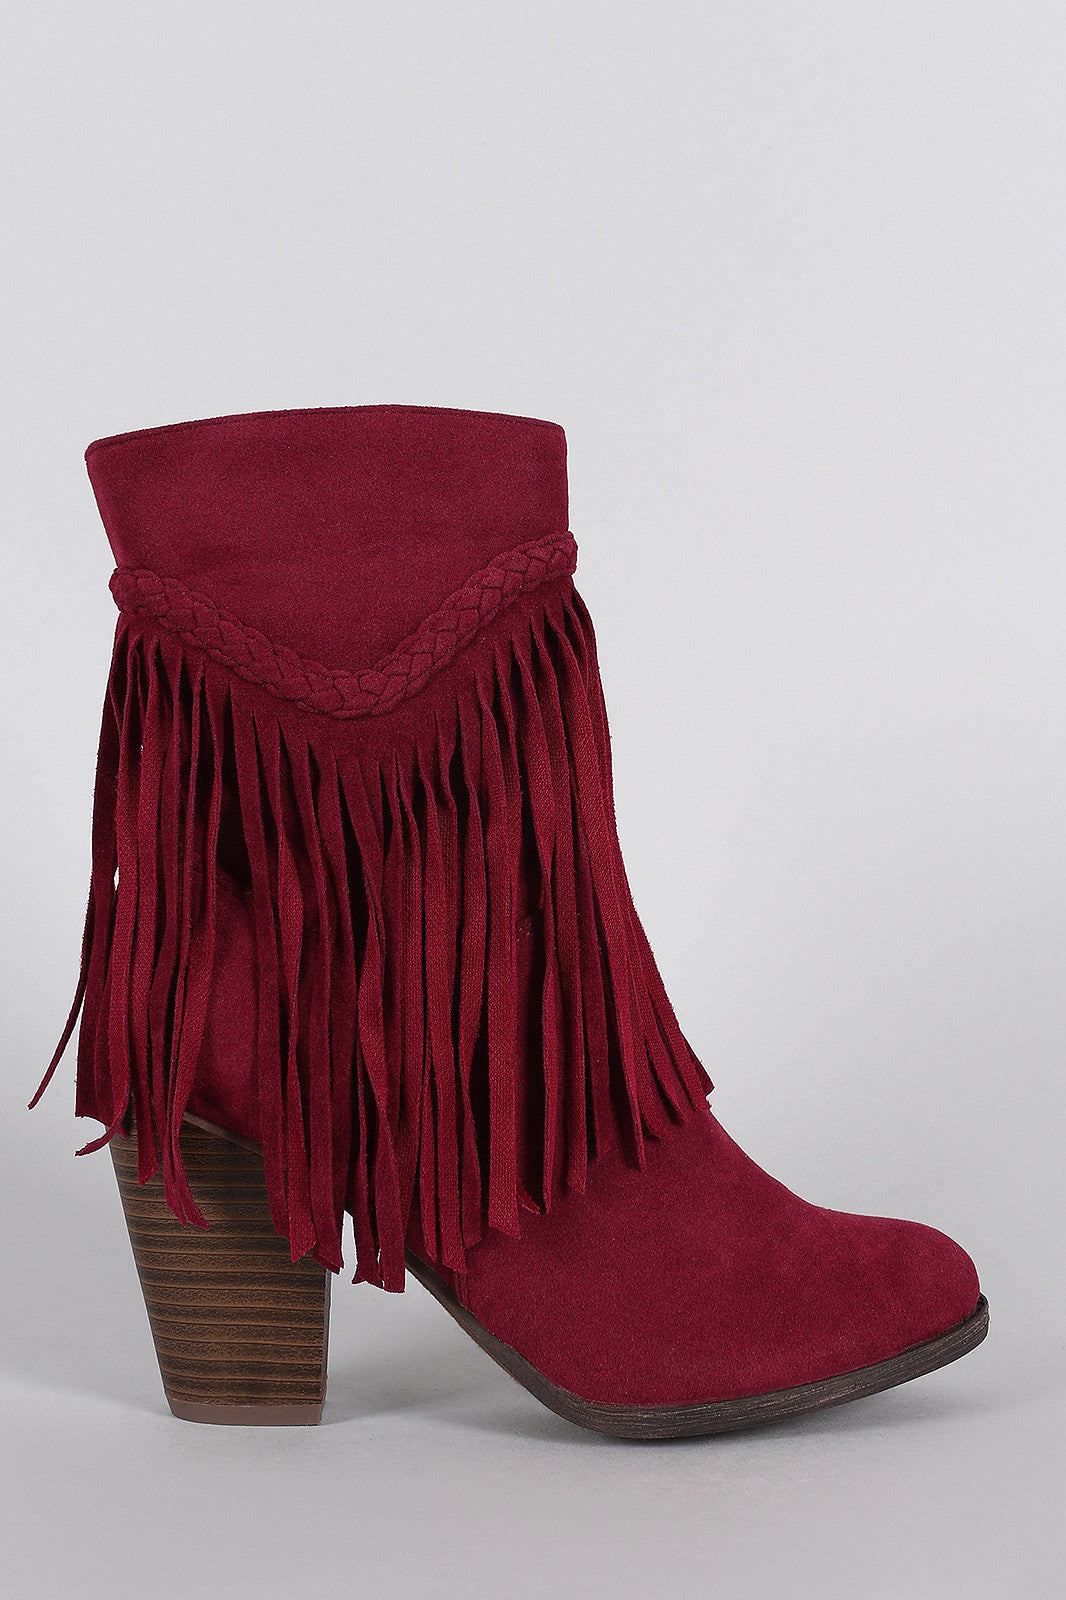 Breckelle Suede Braided Fringe Heeled Ankle Boots - Thick 'N' Curvy Shop - 1